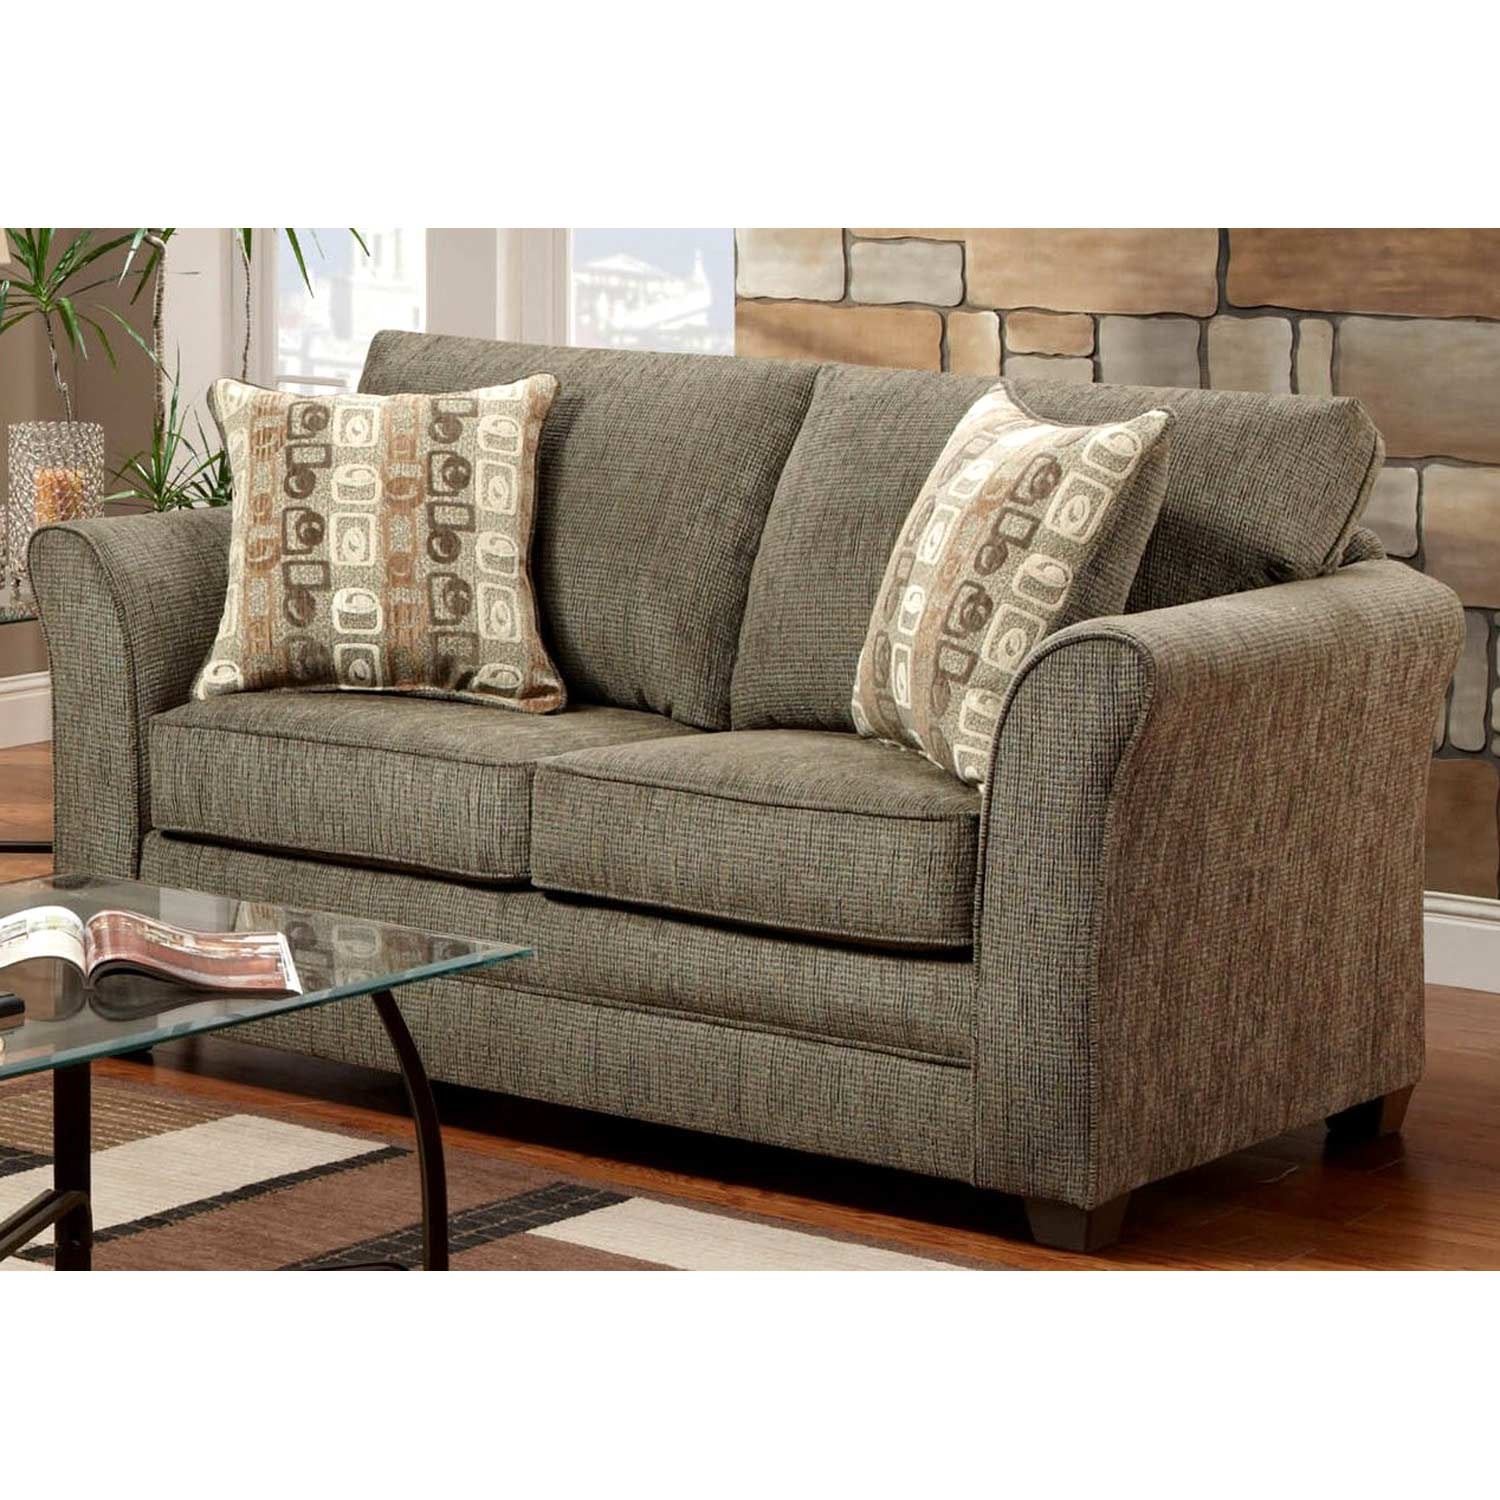 essex sofas build your own sectional sofa the brick loveseat accent pillows radar graphite fabric